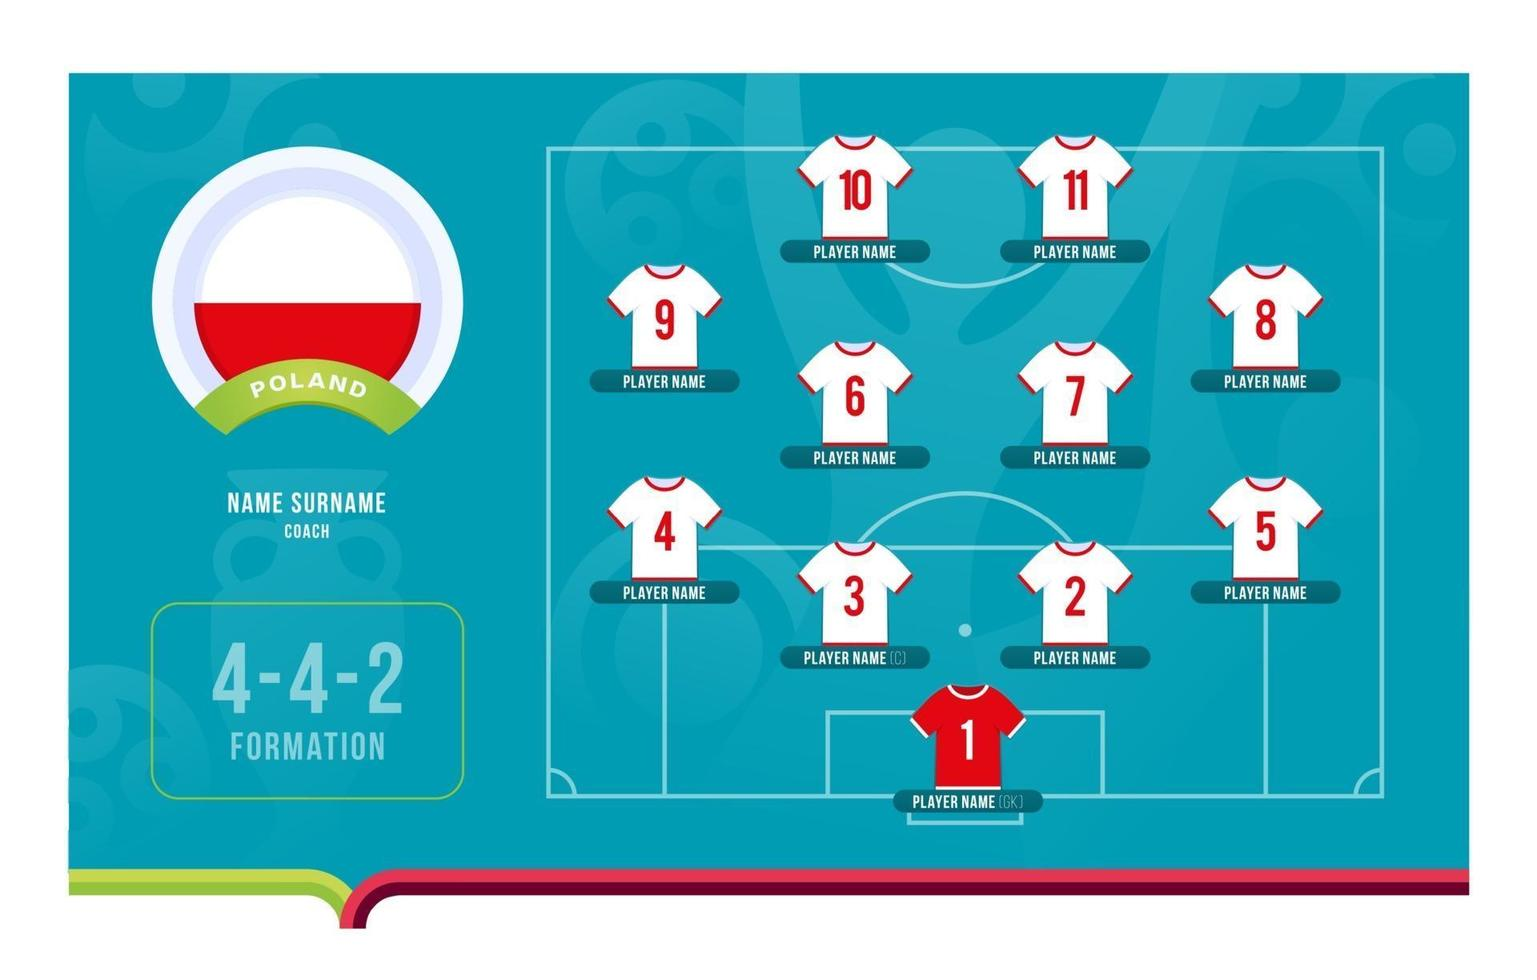 Poland line-up Football tournament final stage vector illustration